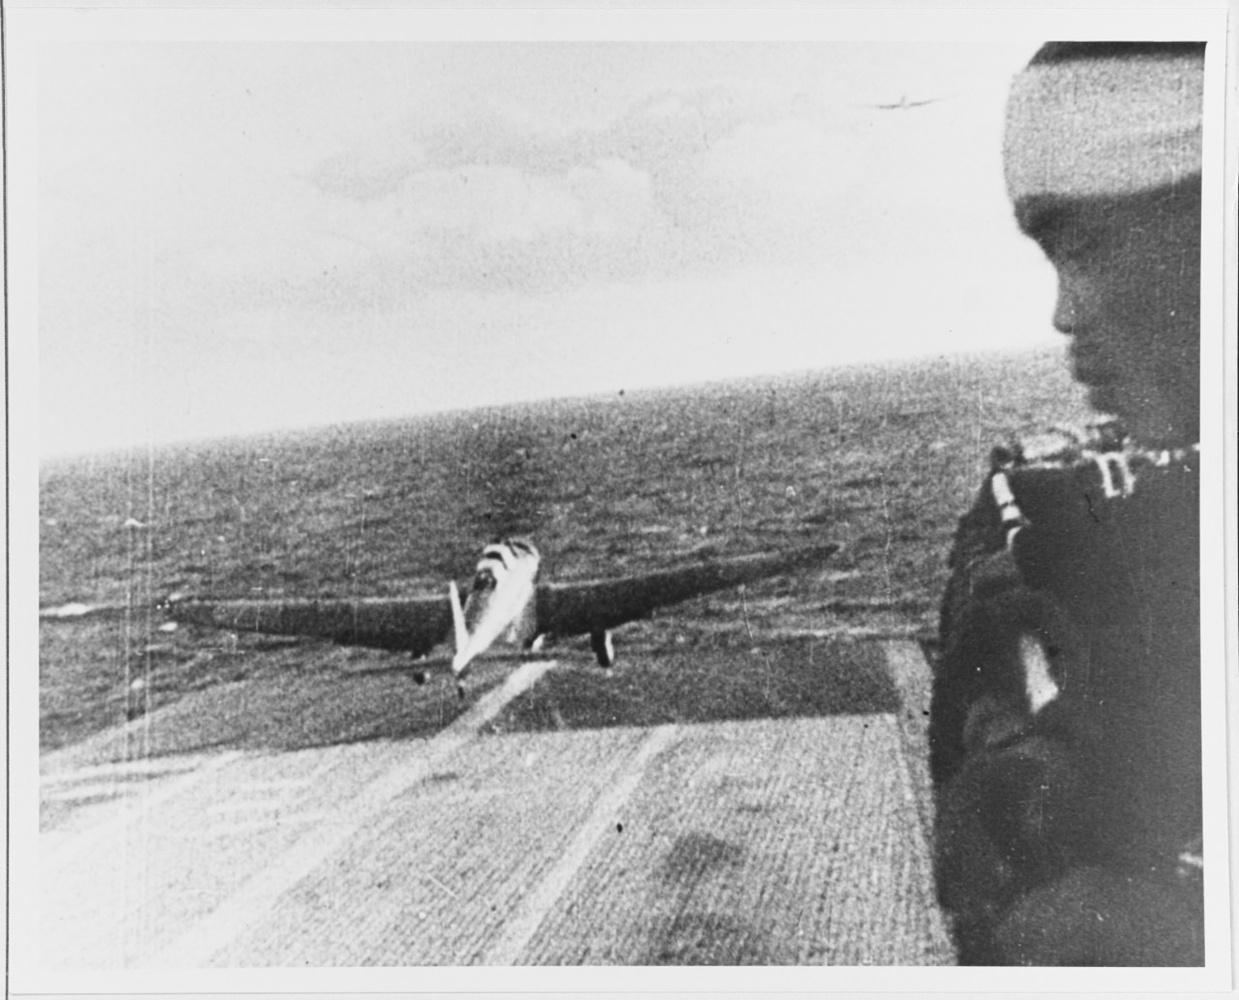 A Japanese Navy Attack Plane taking off from an aircraft carrier on its way to Pearl Harbor on December 7, 1941. For some reason I liked the profile in the foreground of the Japanese soldier looking on.